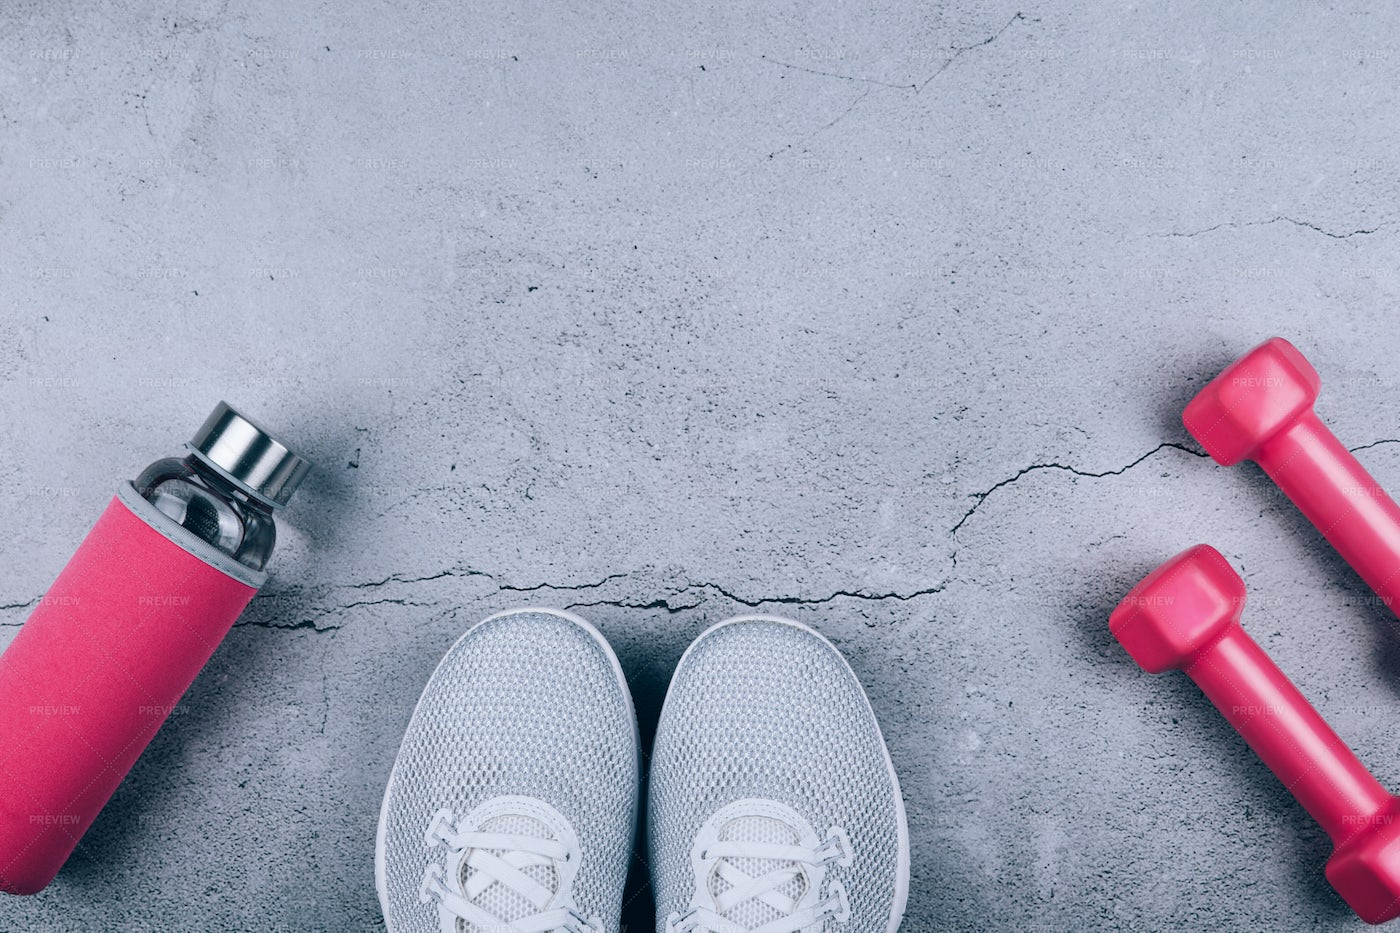 Sport Shoes And Sporty Items: Stock Photos